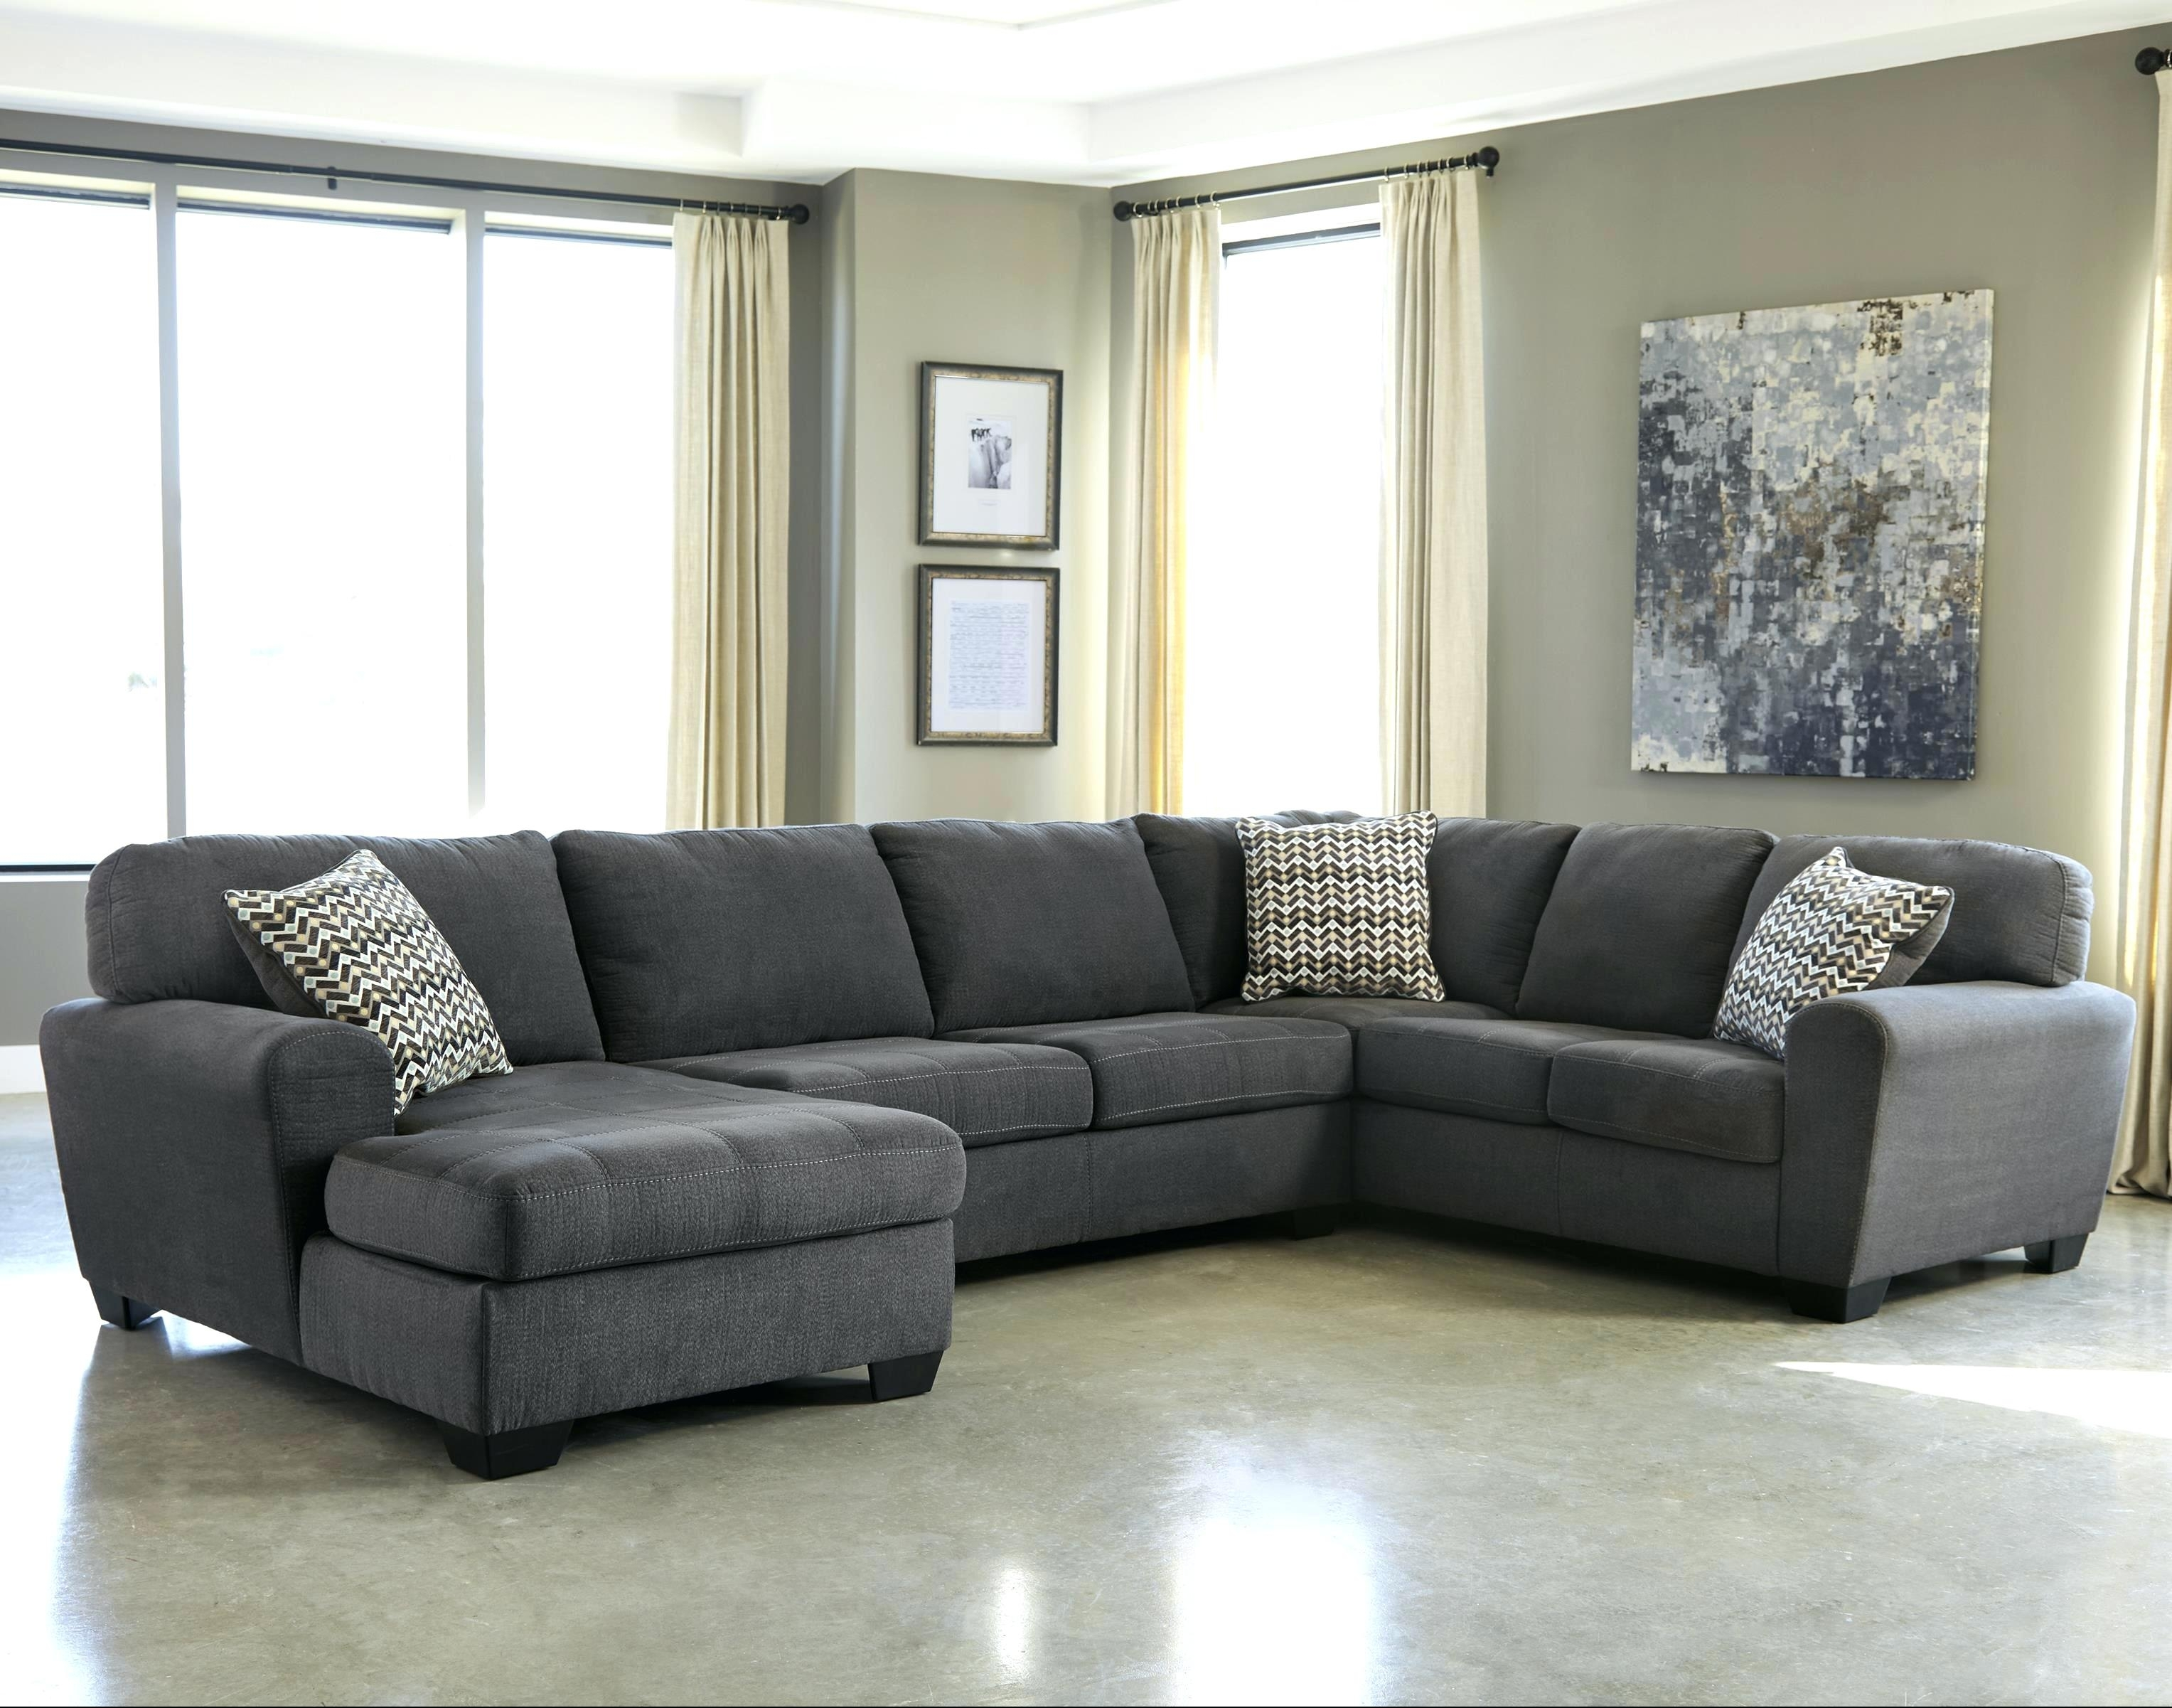 3 Piece Sectional Haven Blue Steel 3 Piece Sectional 3 Pc Reclining With Haven Blue Steel 3 Piece Sectionals (View 3 of 25)